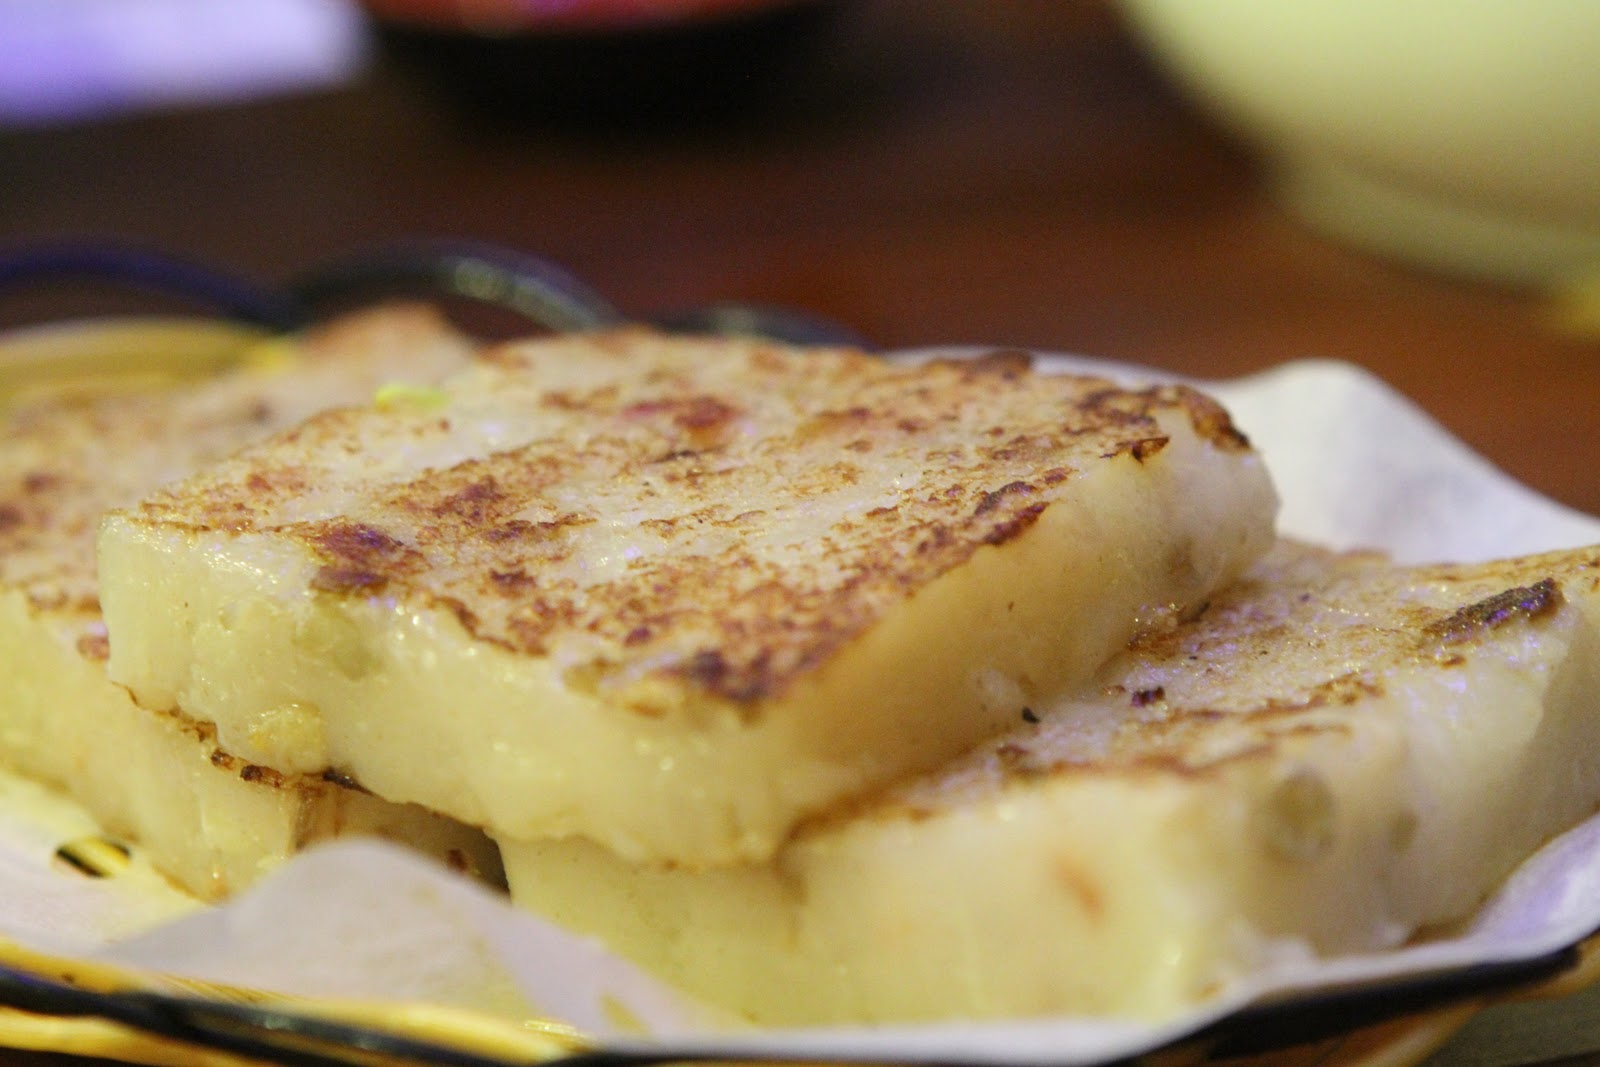 Pan-fried turnip cake with preserved meats (煎臘味蘿蔔糕 ...